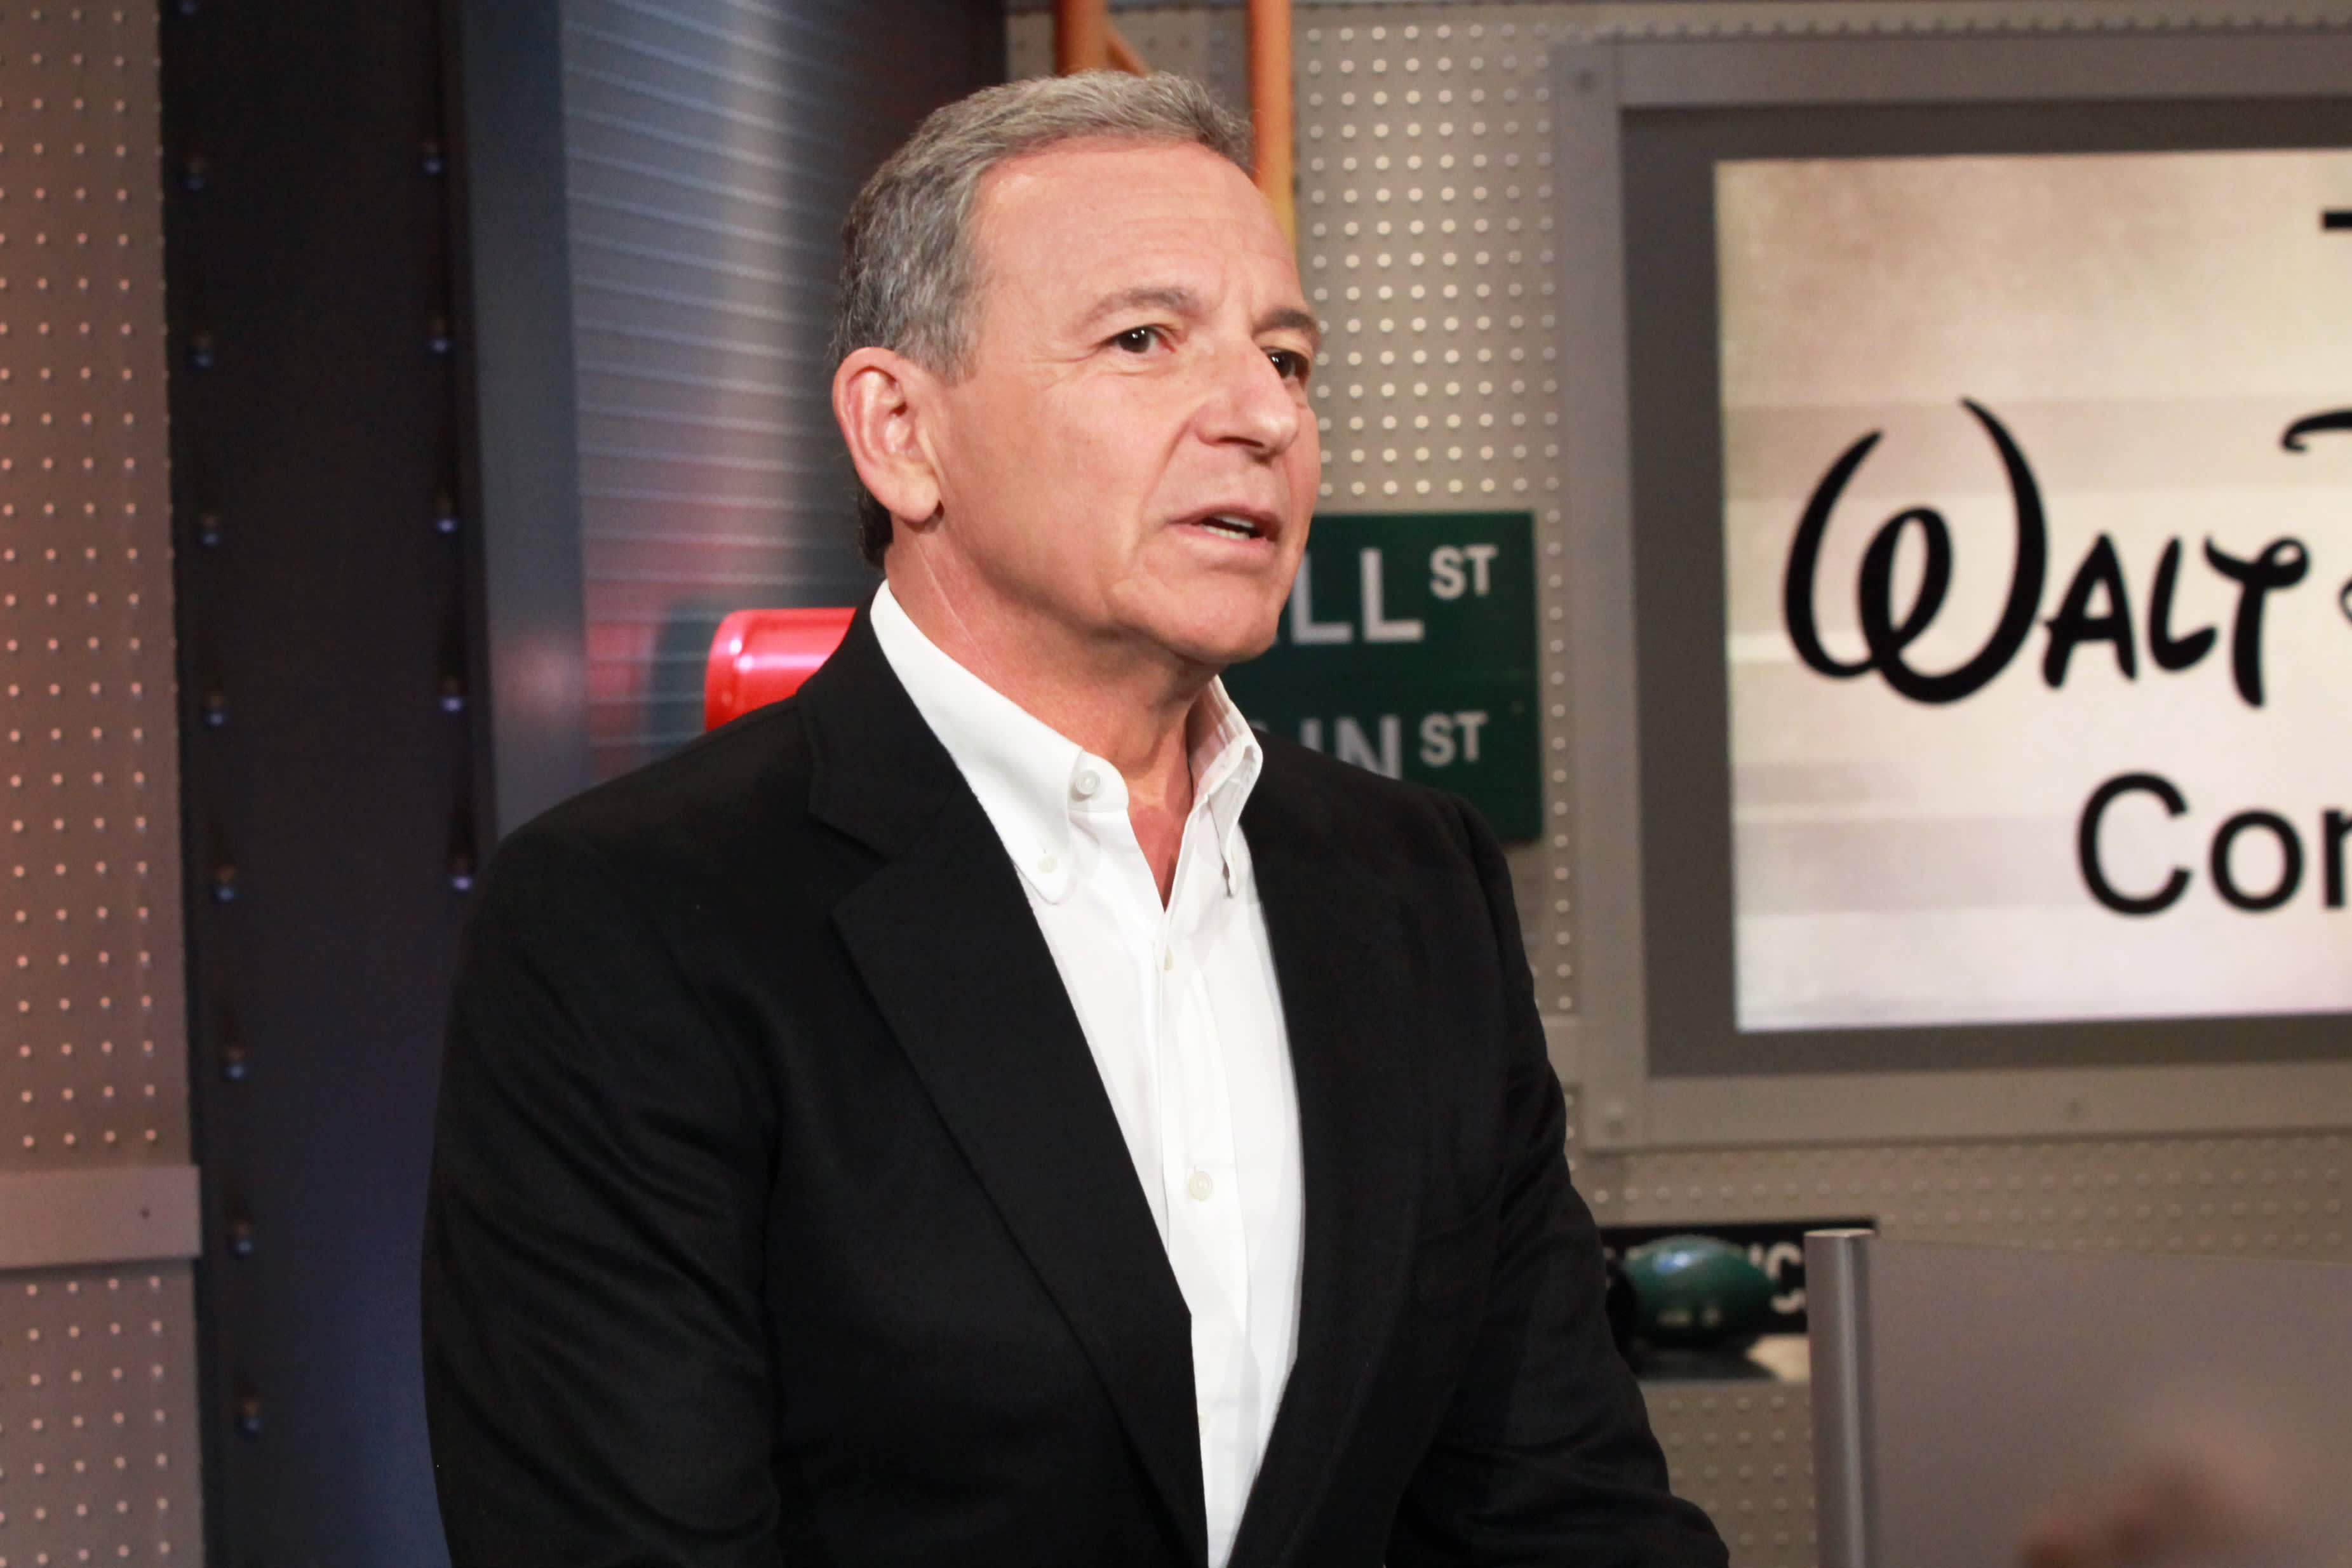 Disney CEO Bob Iger tells Jim Cramer why he had second thoughts on a Twitter deal — 'I got cold feet for the right reasons'